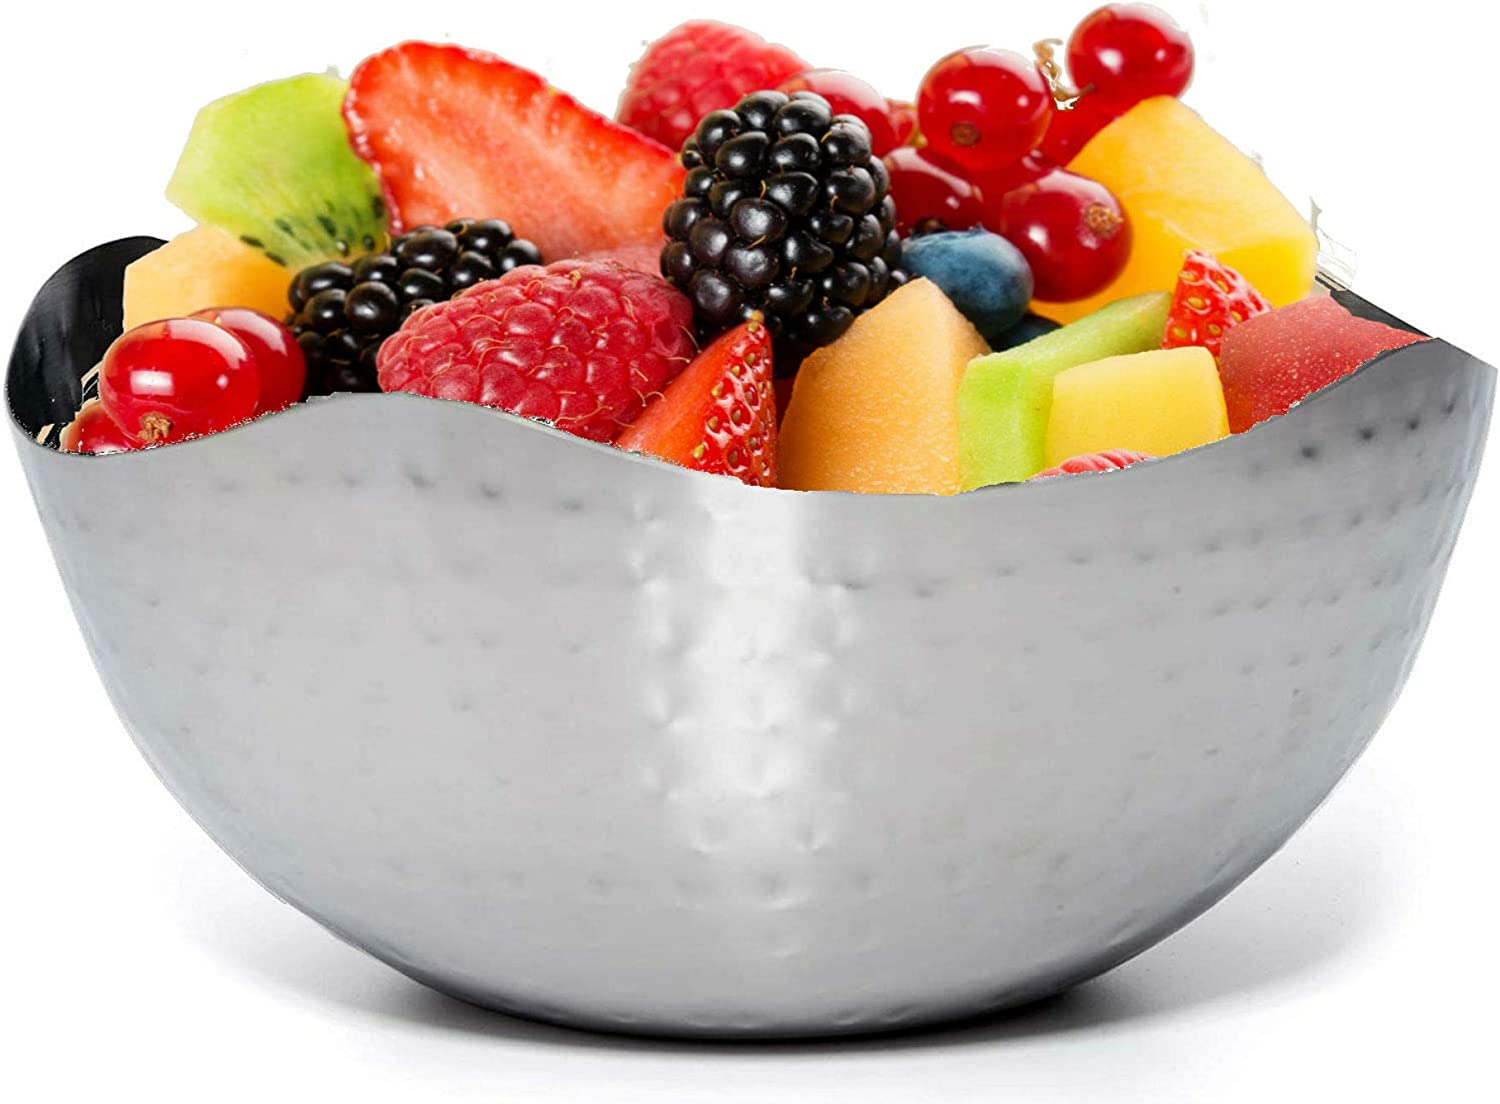 "Bezrat Hammered Stainless Steel Serving Bowl – Multipurpose Fruit/Salad/Snacks Decorative Metal Wave Bowls (9.4"" x 9.4"")"